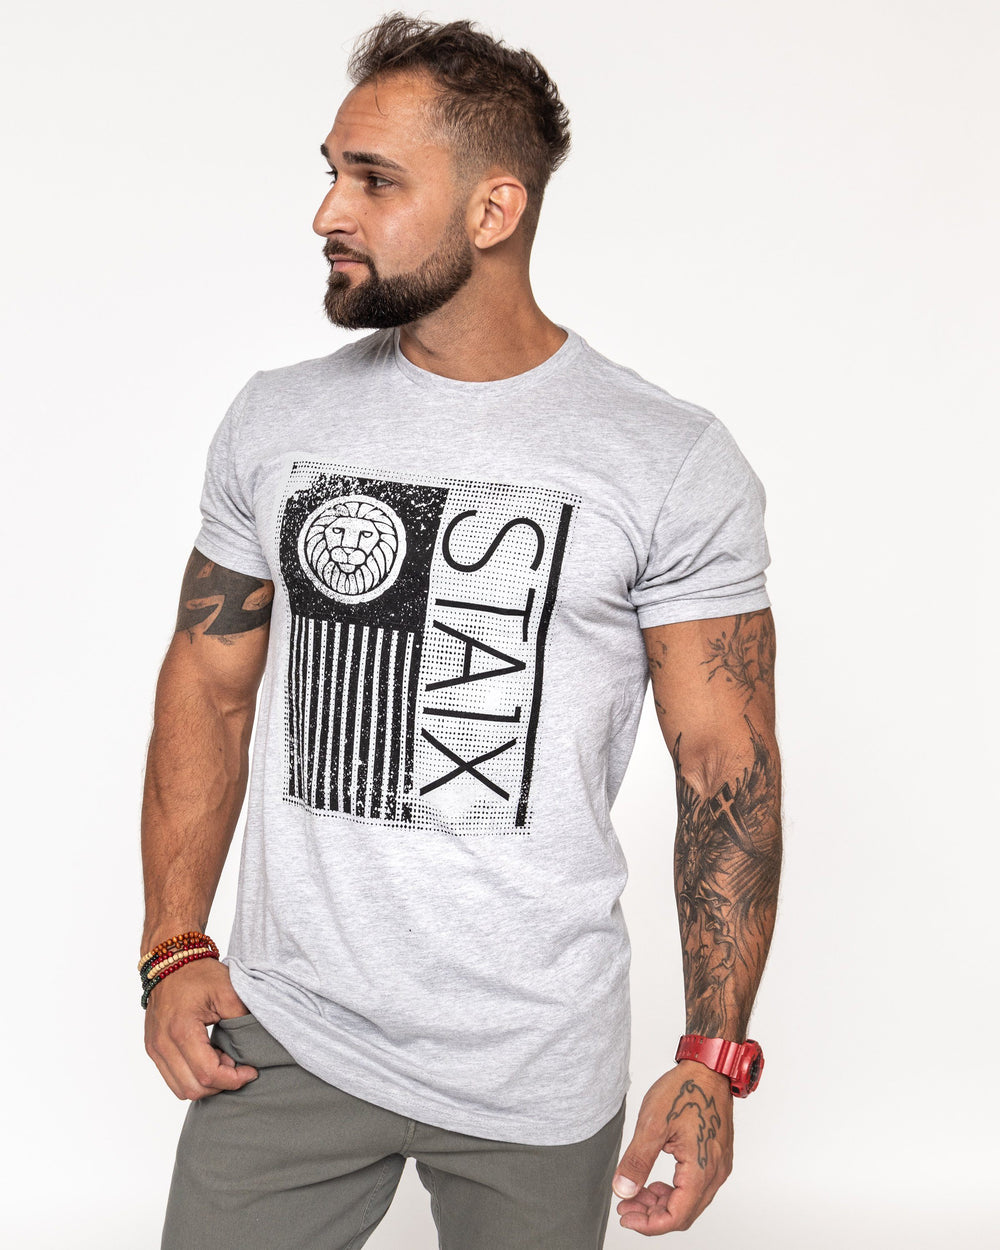 Scoop Flag Tee - Gray Men's STAIX Tee STAIX M